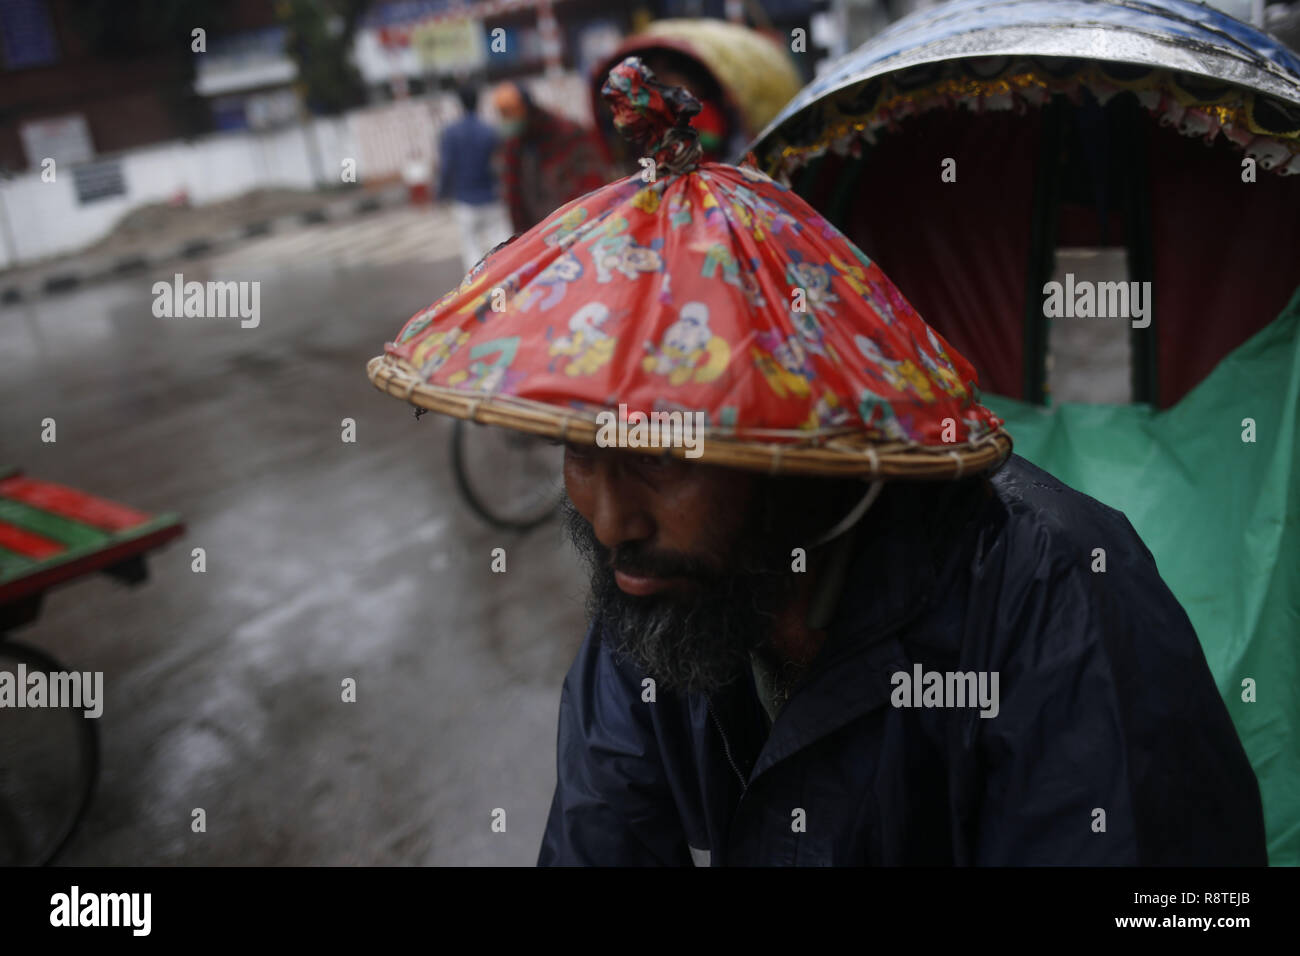 "December 17, 2018 - Dhaka, Bangladesh - A Rickshaw puller waits for passenger during rain near Polashi. According to news, part of the country experienced light to moderate rain due to the cyclonic storm, ""Phethaiâ (Credit Image: © MD Mehedi Hasan/ZUMA Wire) - Stock Image"